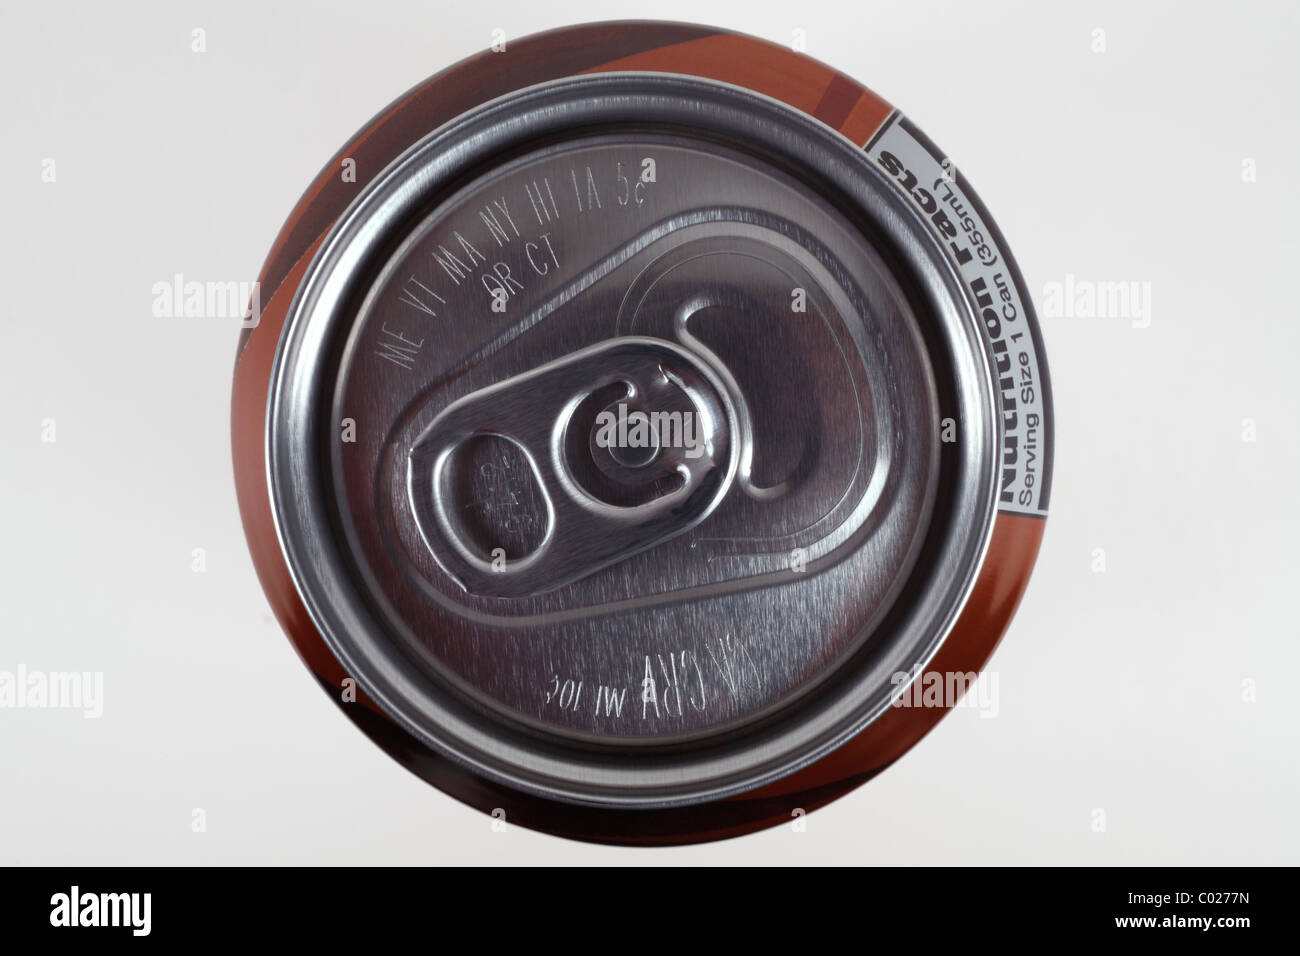 Top of aluminum soda can Stock Photo